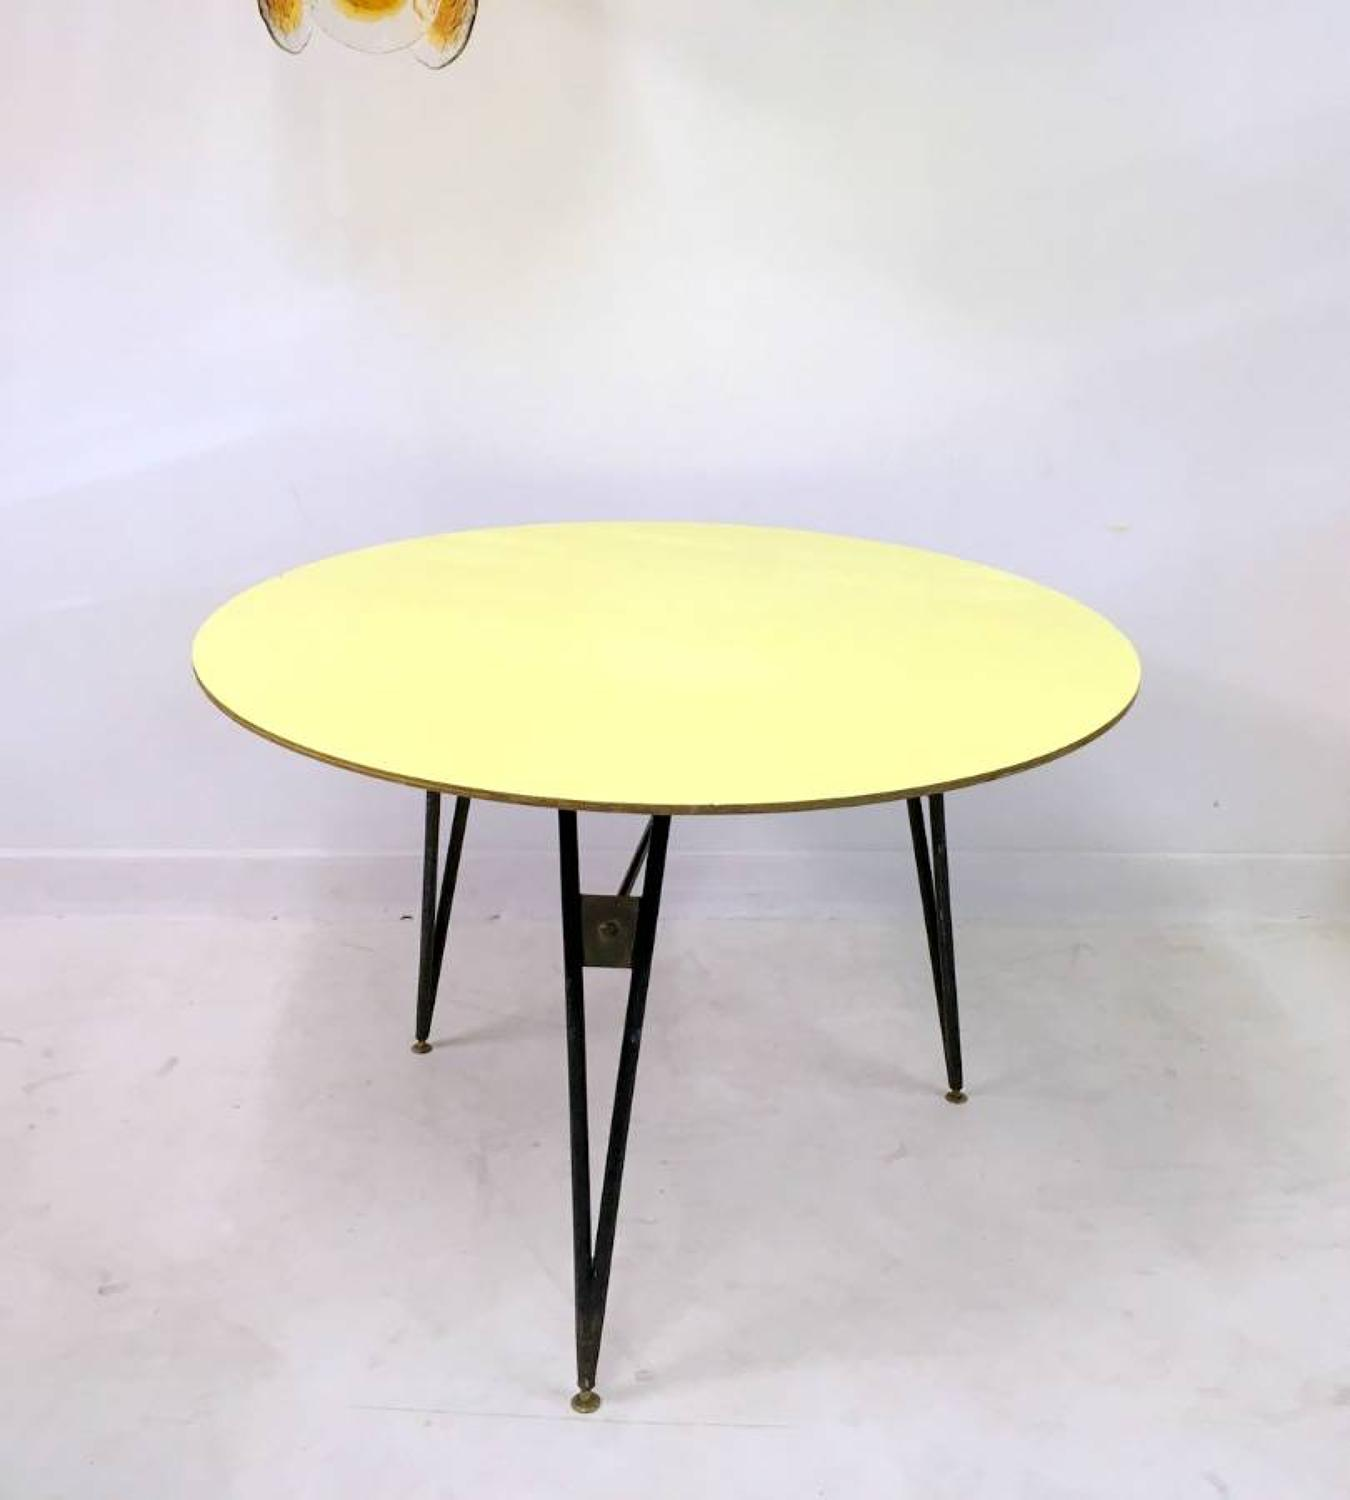 1950s Italian steel, brass and formica table